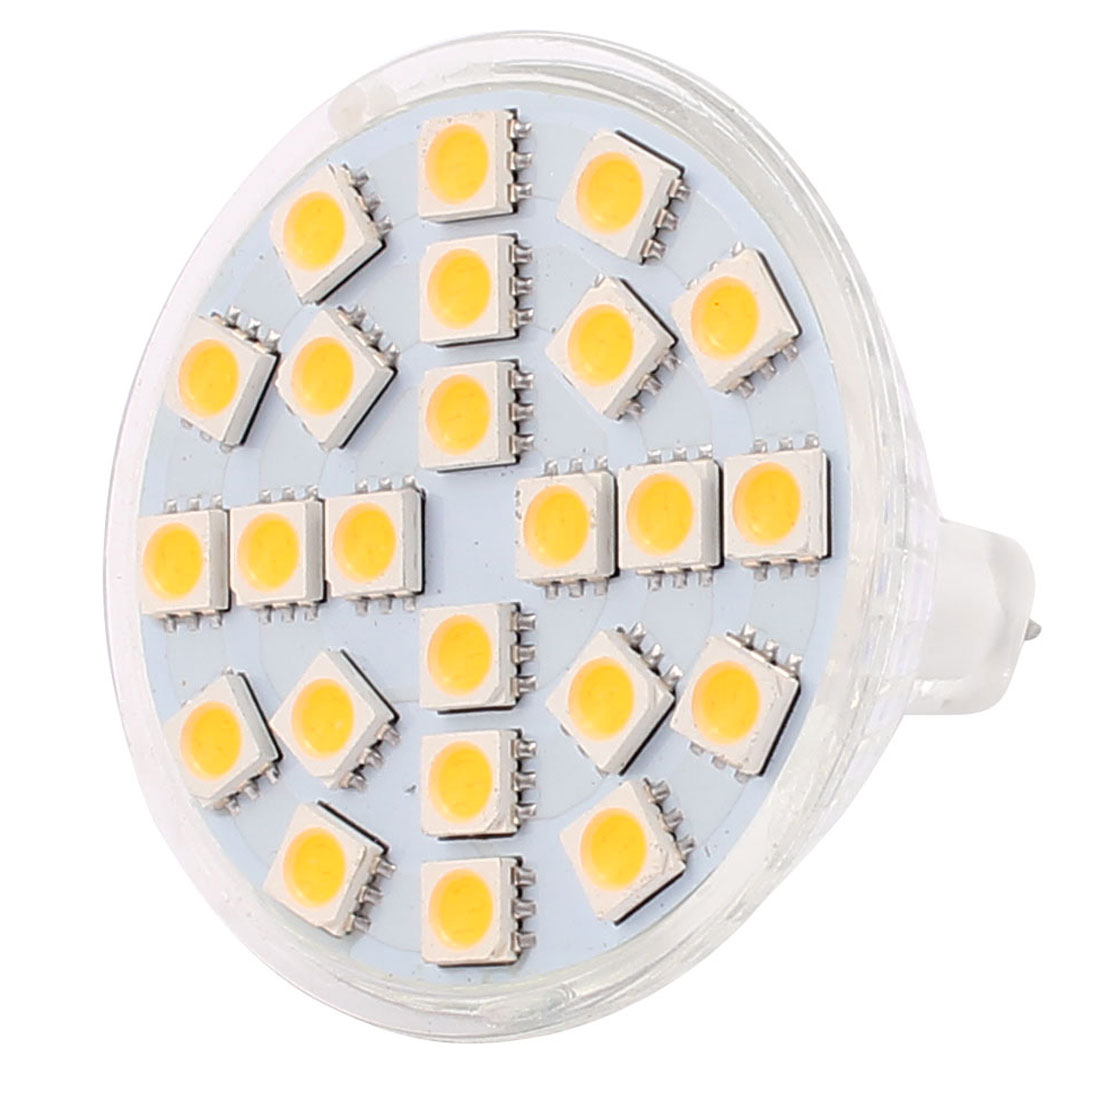 MR16 SMD 5050 24 LEDs Glass Energy Saving LED Lamp Bulb Warm White AC 220V 3W